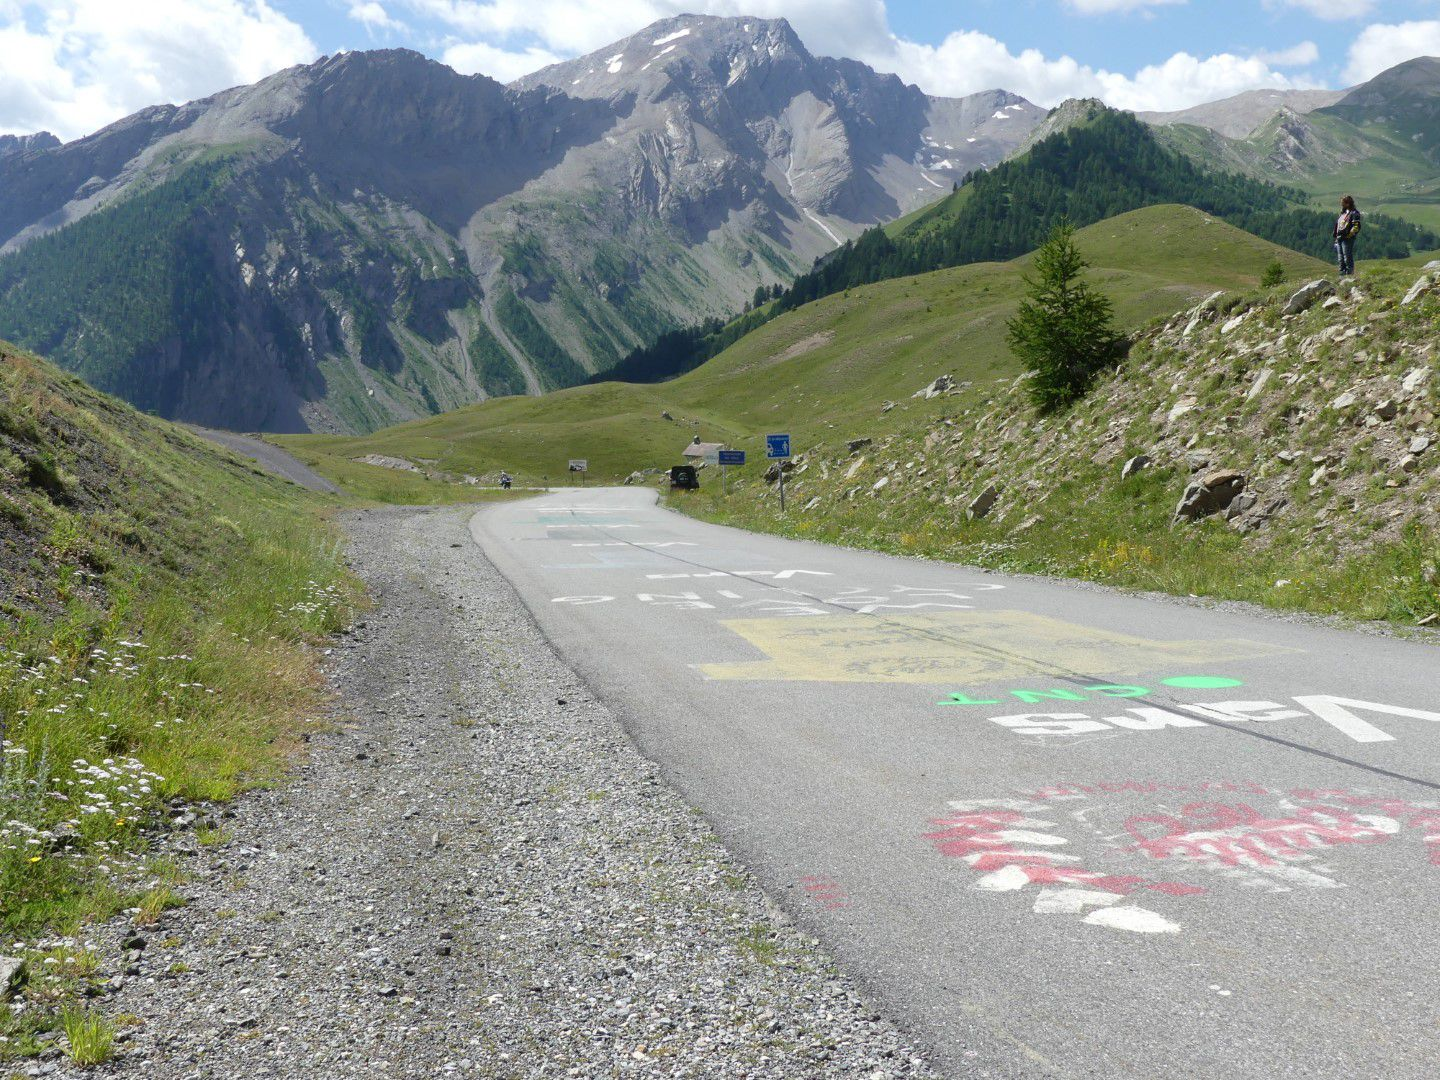 Col de Vars, Hautes-Alpes, France